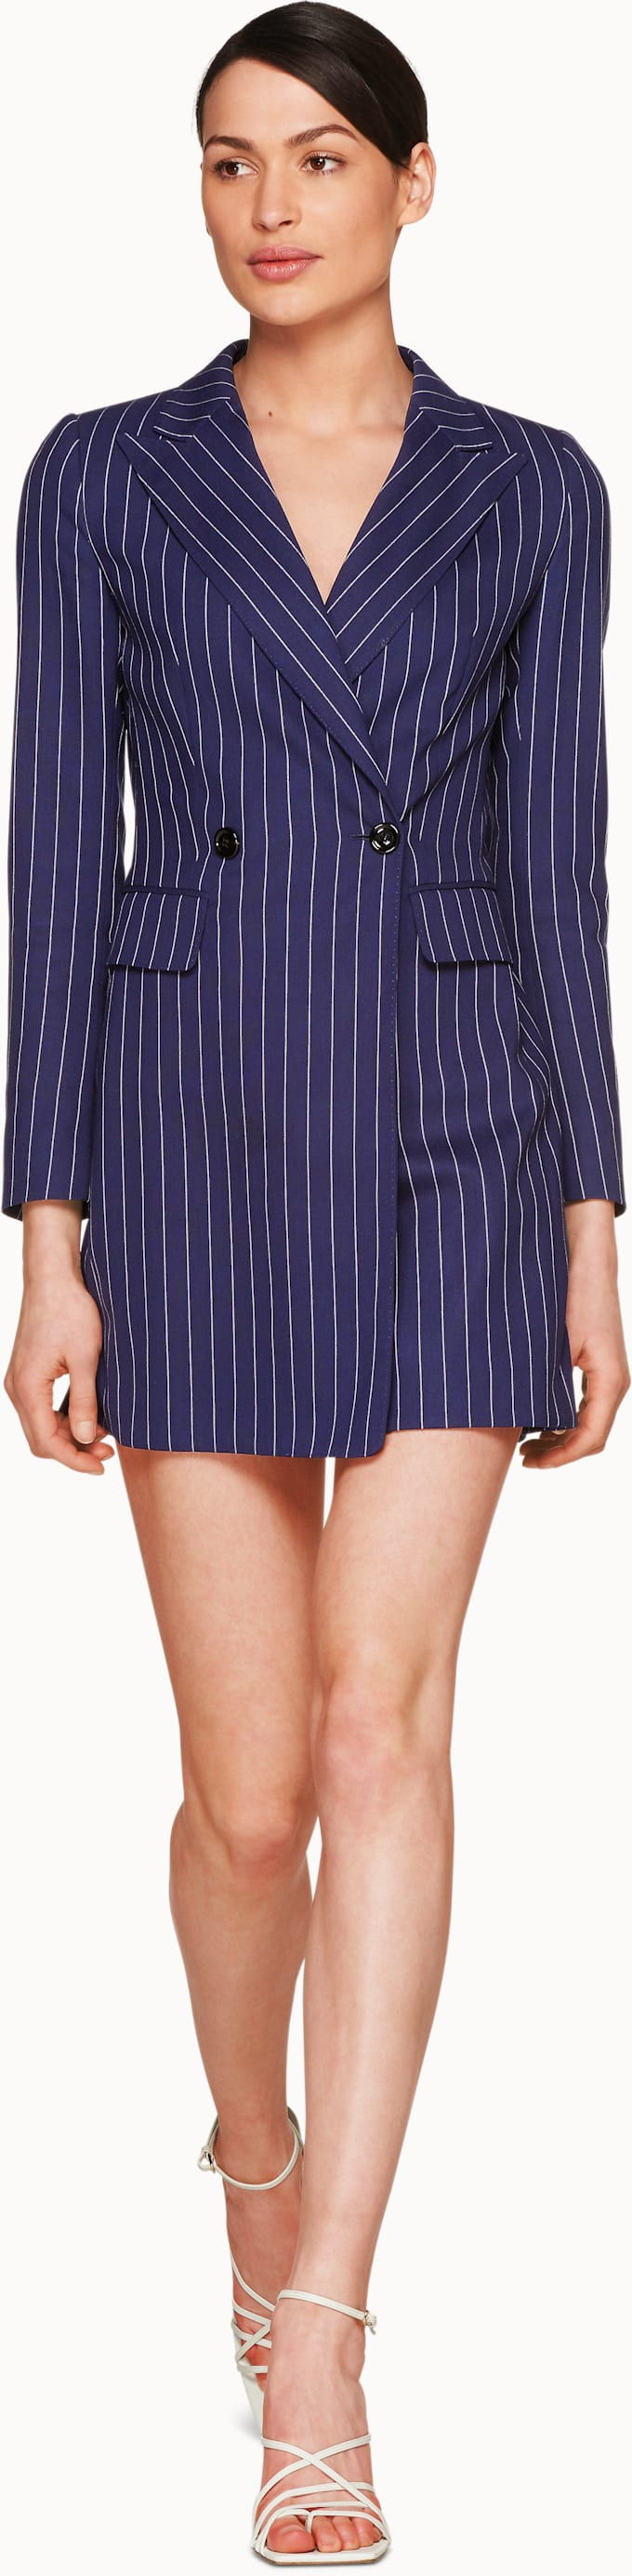 69f4feebc13 Trunk Navy Striped Playsuit Ljs0015